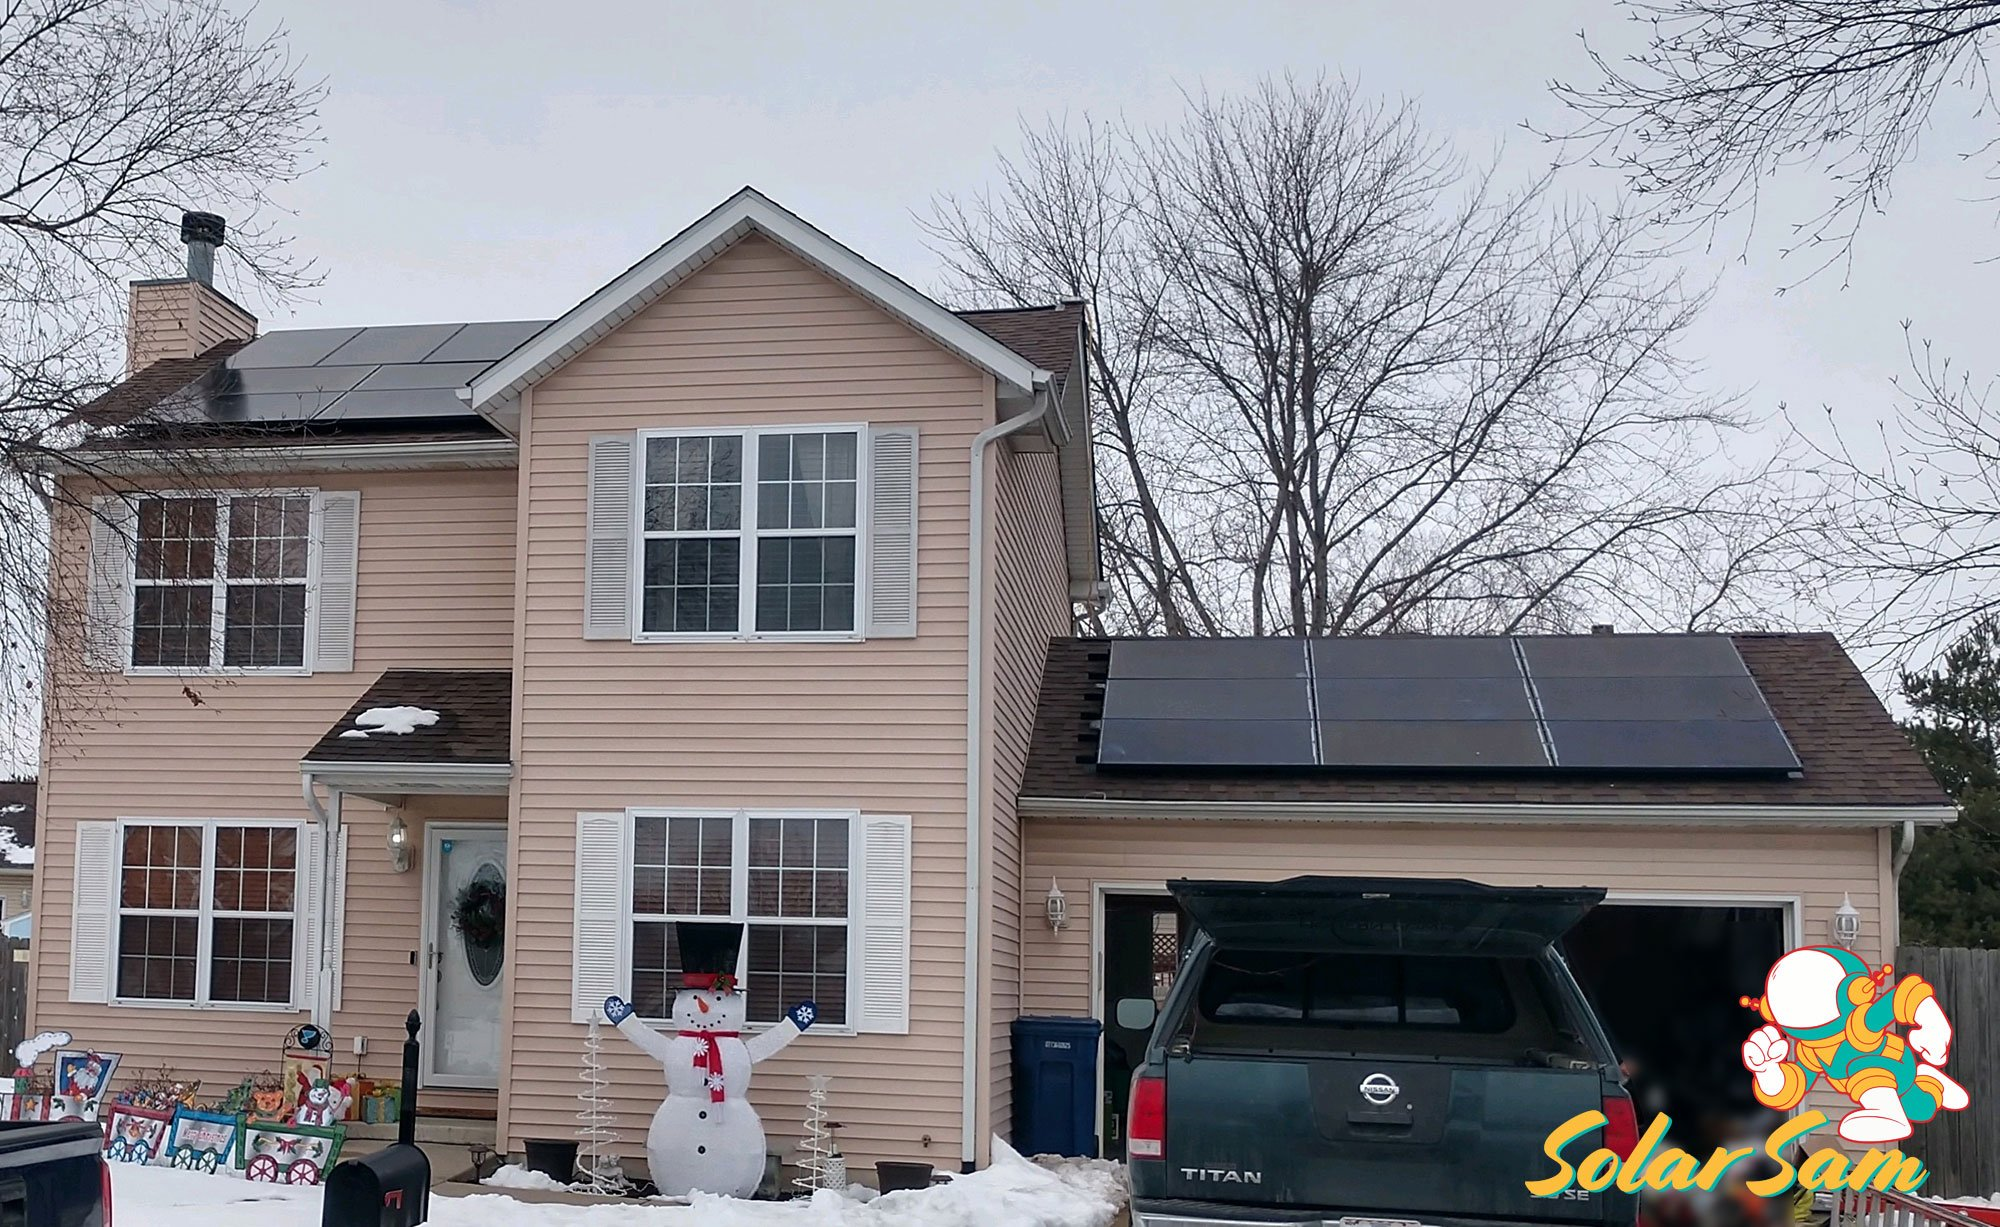 Roof House Solar Panel Installation Belleville Illinois Solar Sam Professional Panels Installation Silfab Solar Edge Inverter ATT Cellular Monitoring